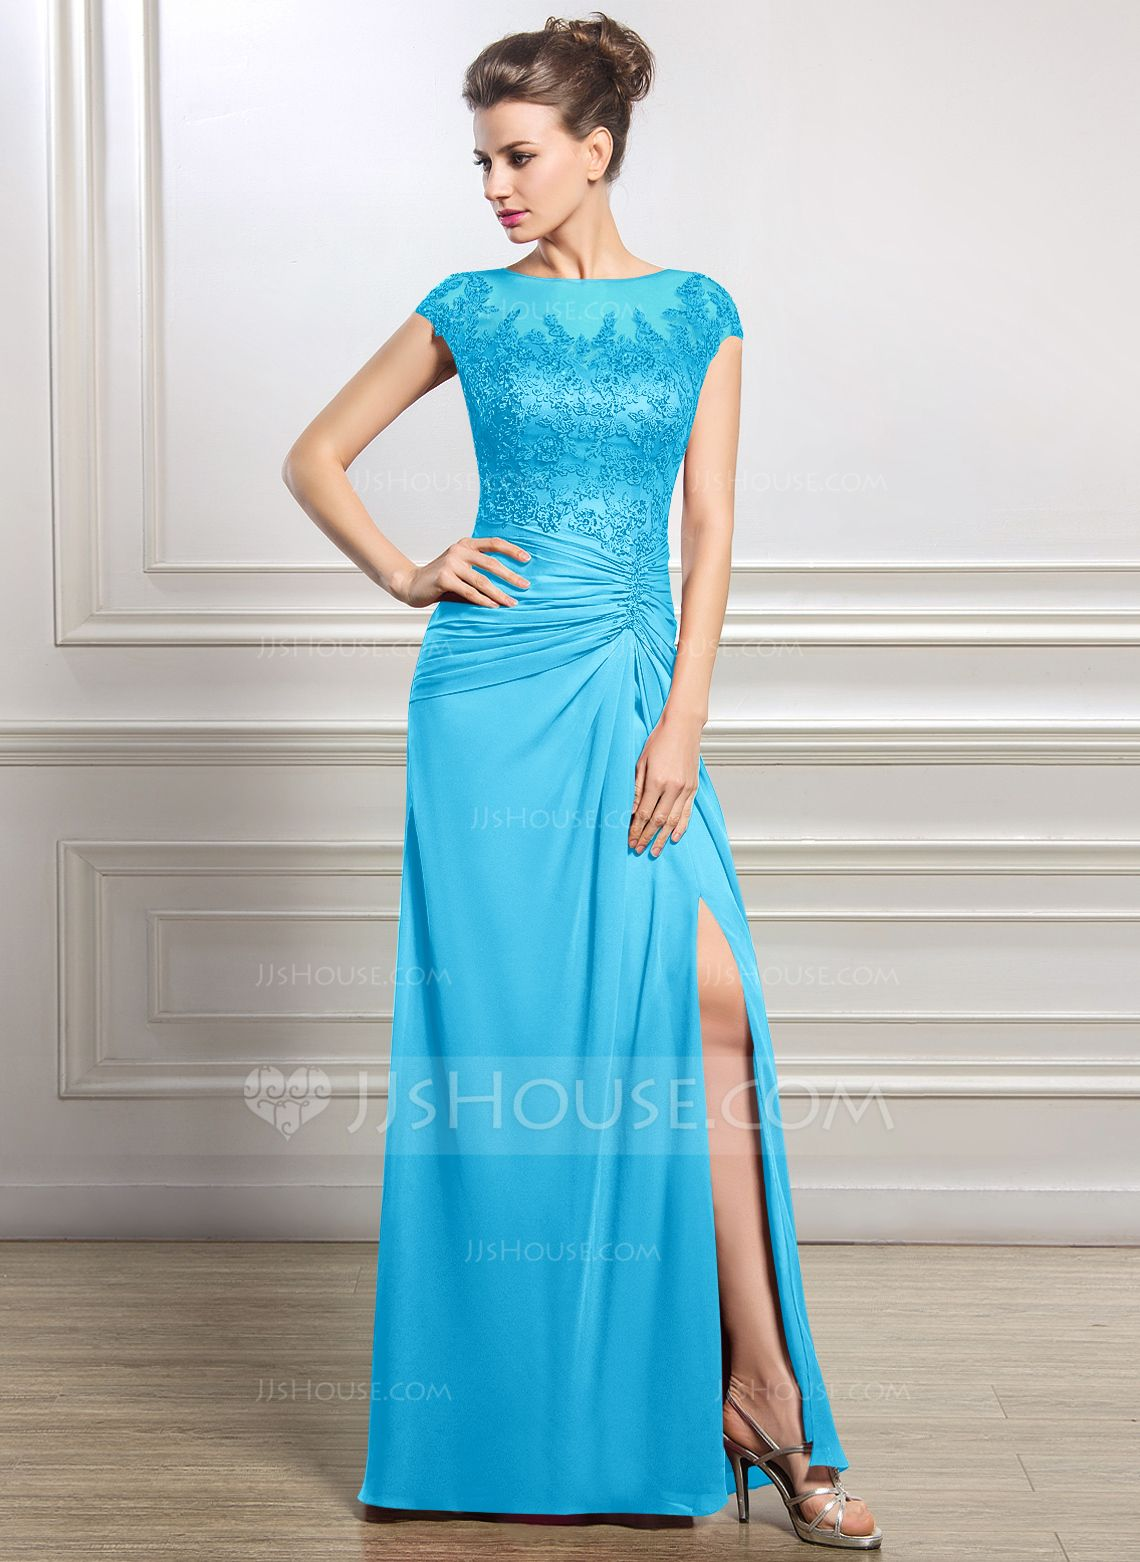 Sheath/Column Scoop Neck Floor-Length Chiffon Mother of the Bride ...